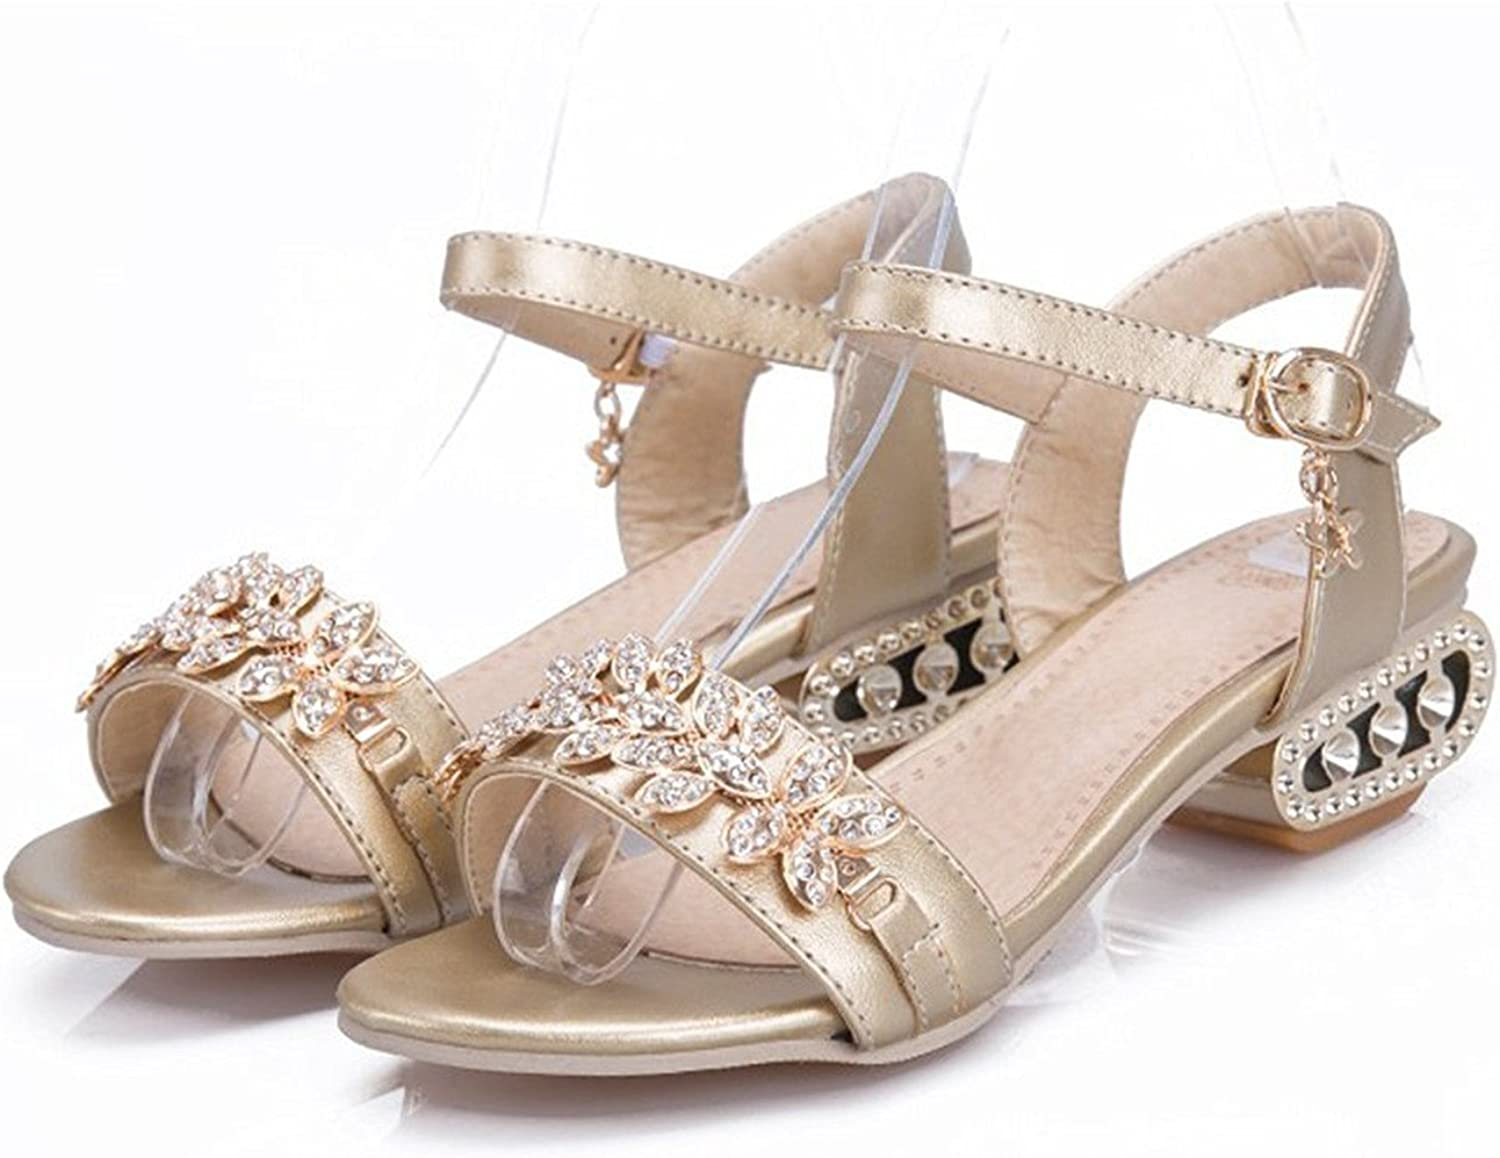 Velardeeee Sandals Women's shoes Glittering Flower Rhinestone Low Heel Sandals